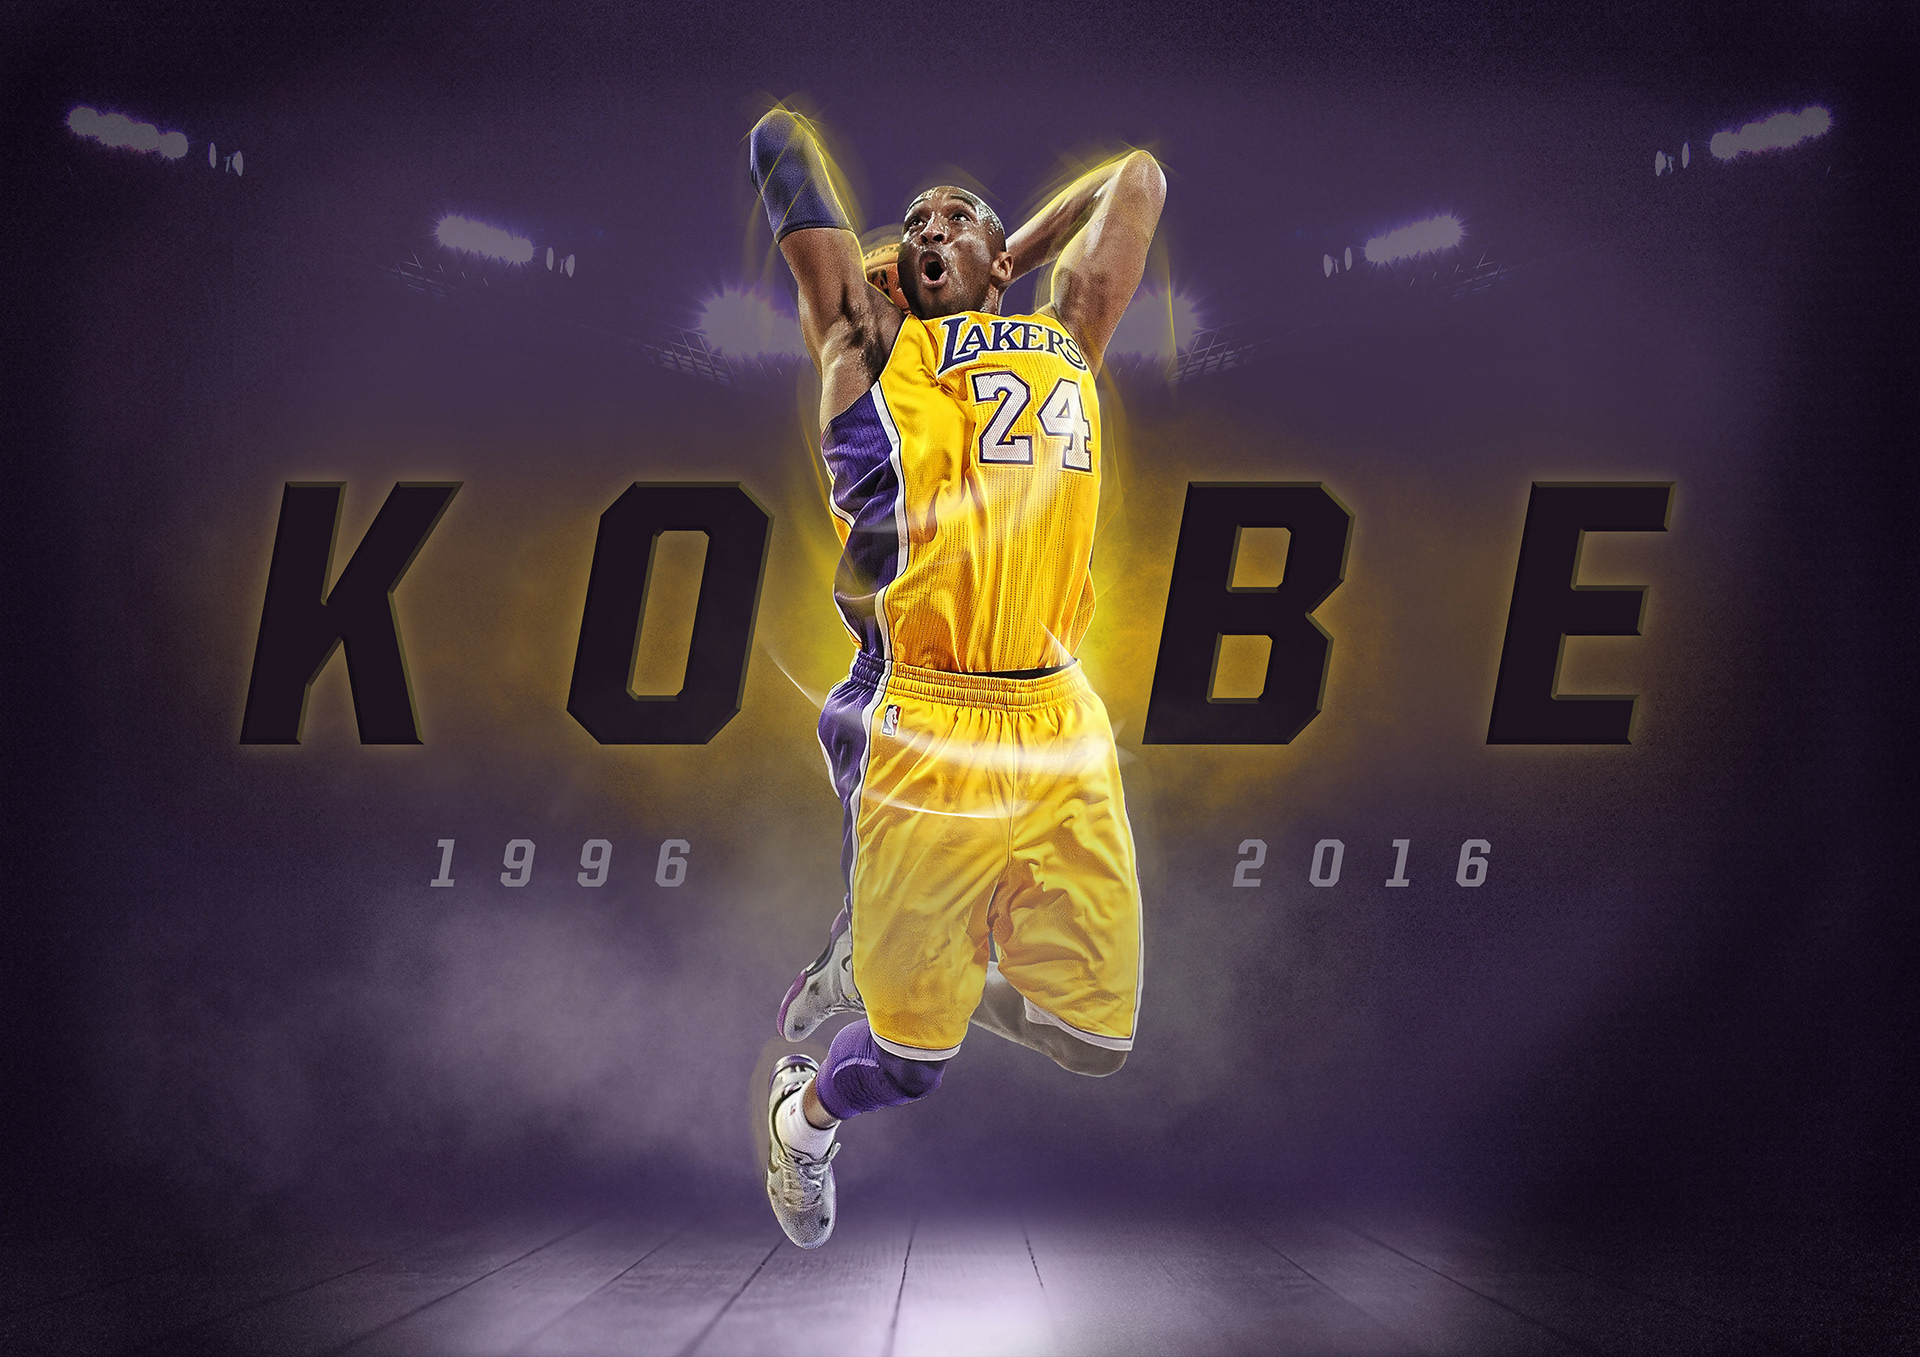 Poster design on ipad - Personal Project Kobe Bryant Poster Design Using Ipad Pro And Apple Pencil